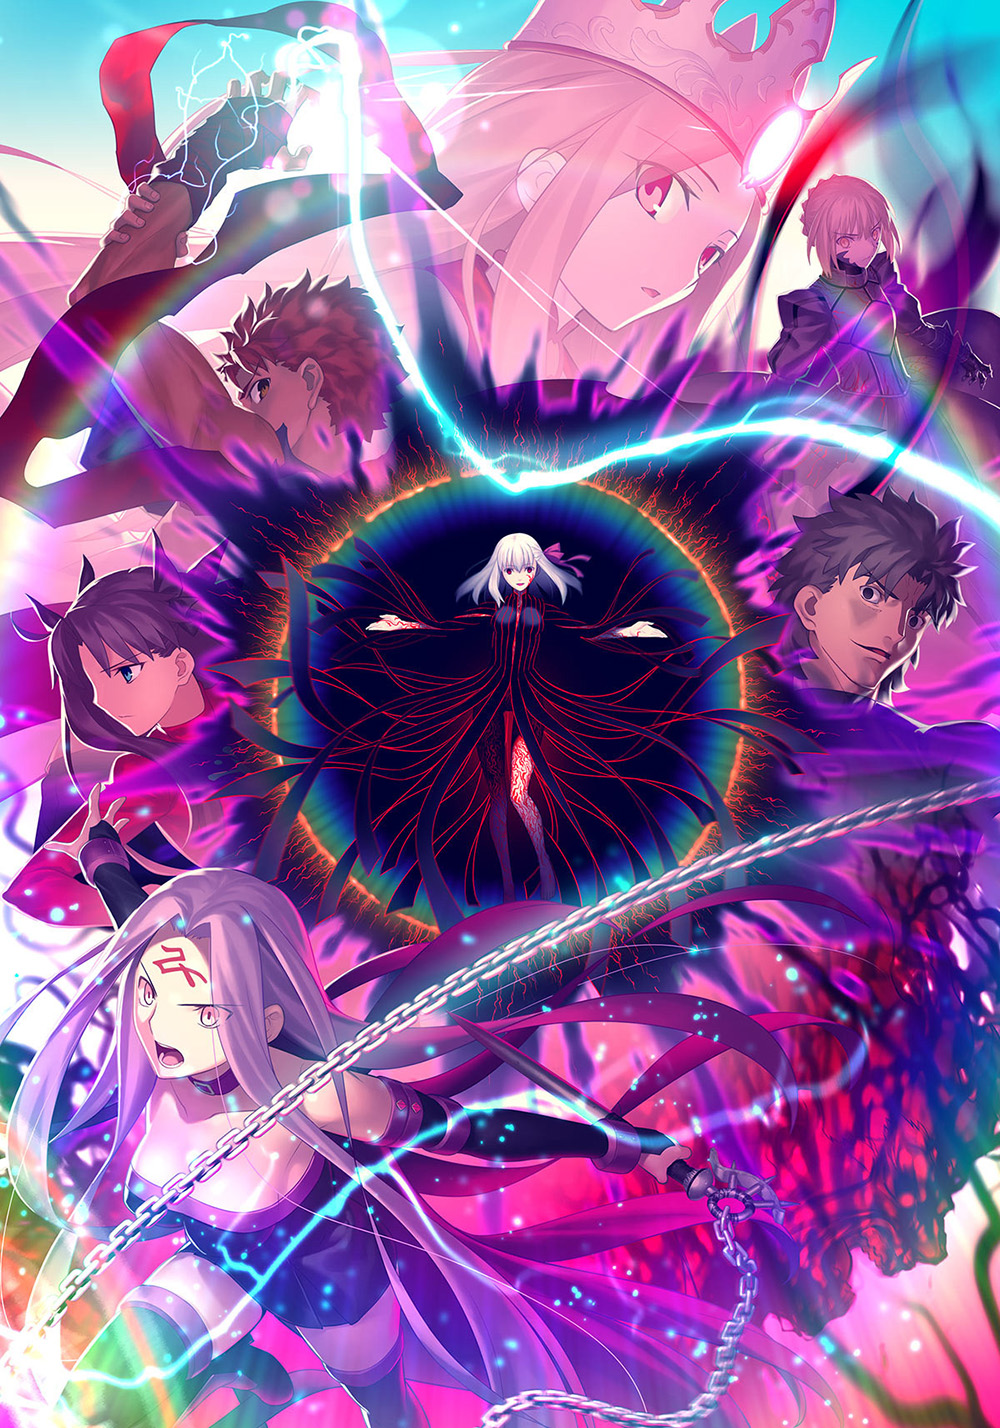 《Fate/stay night [Heaven's Feel] Ⅲ. 春樱之歌》日本将延期至 8 月 15 日上映插图